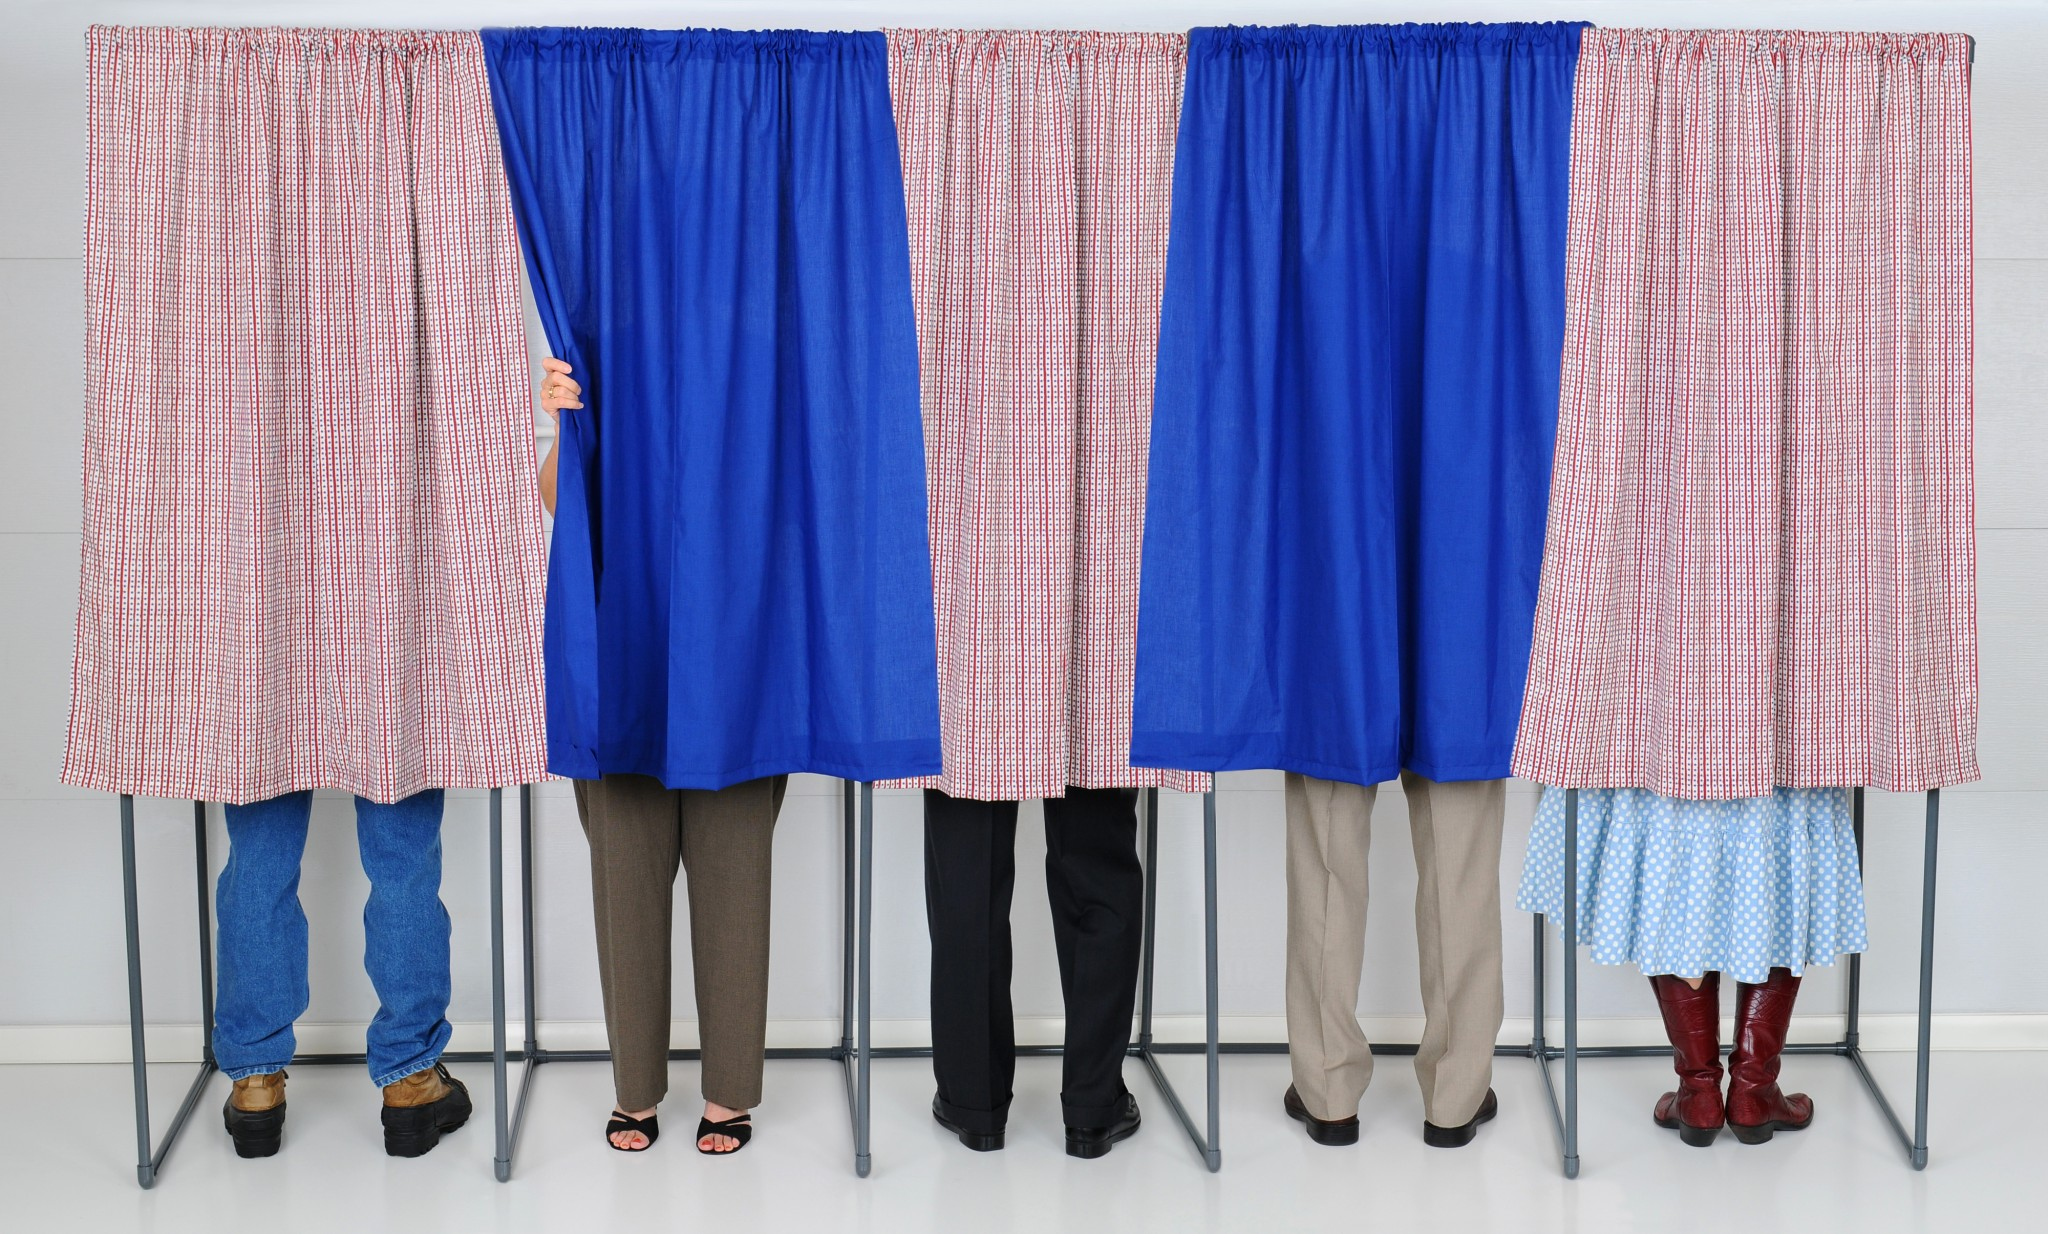 More people vote when they believe it is a social norm.